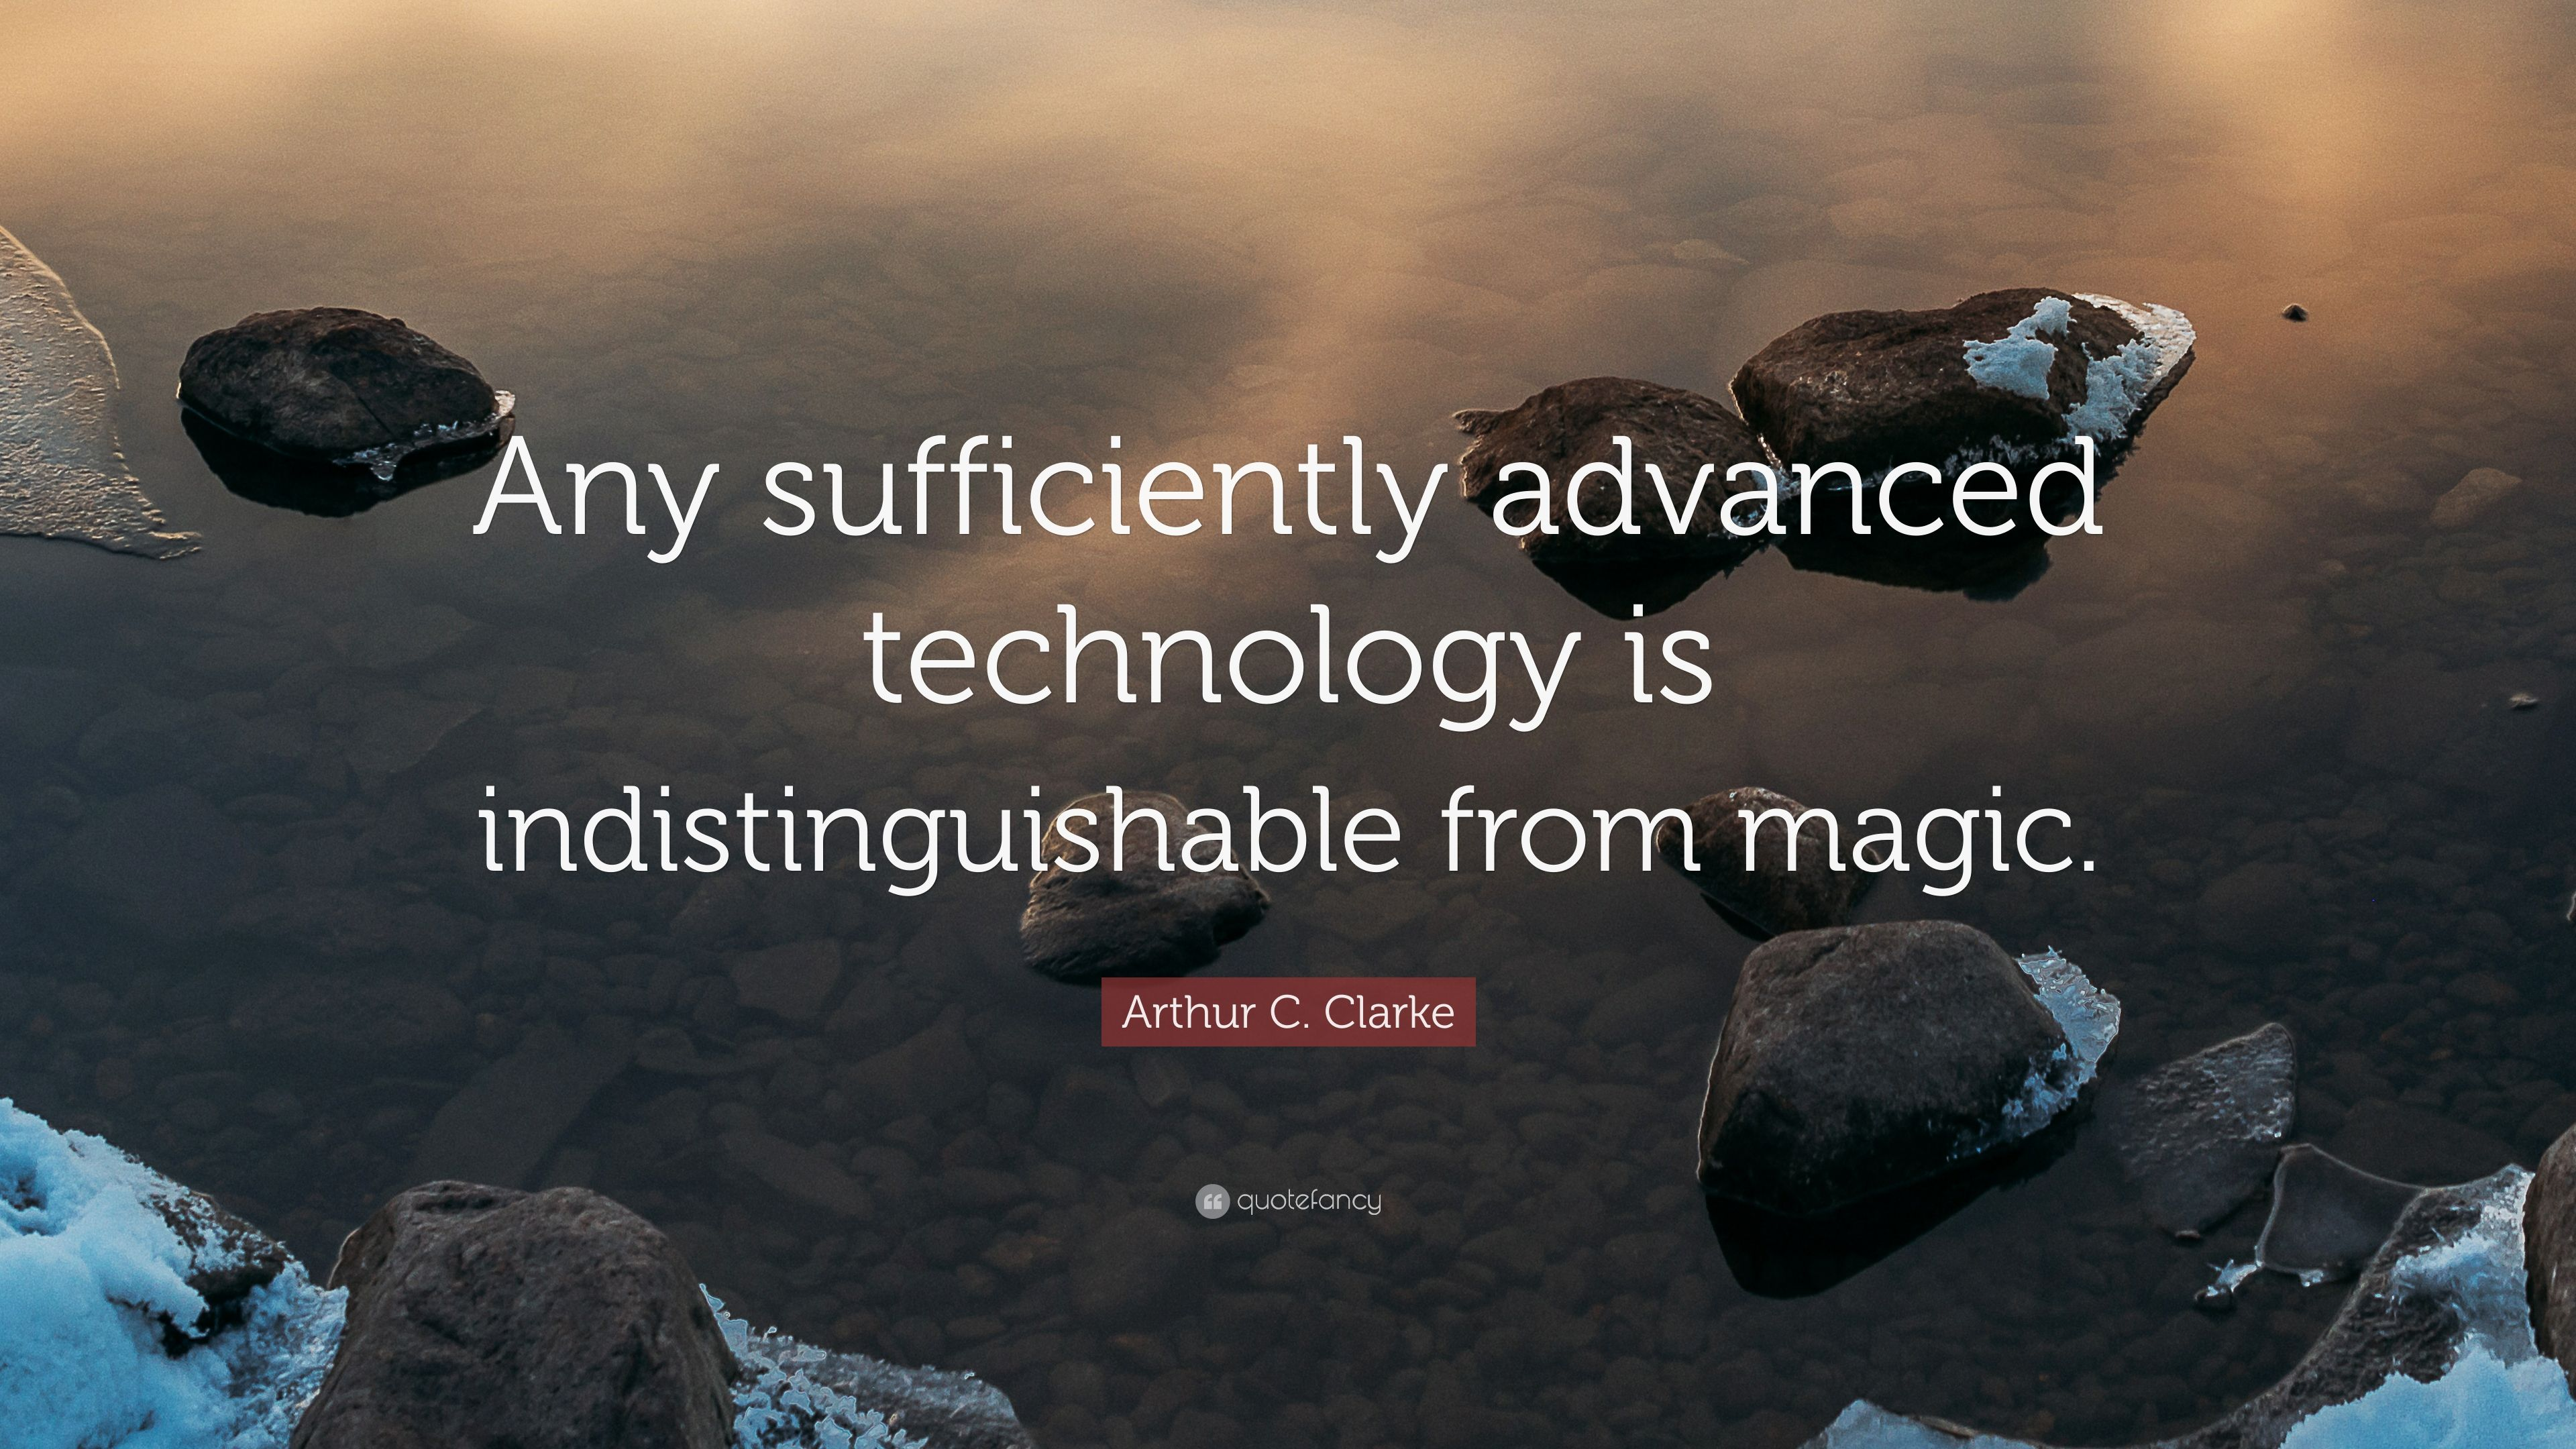 Studying Quotes Wallpaper Arthur C Clarke Quote Any Sufficiently Advanced